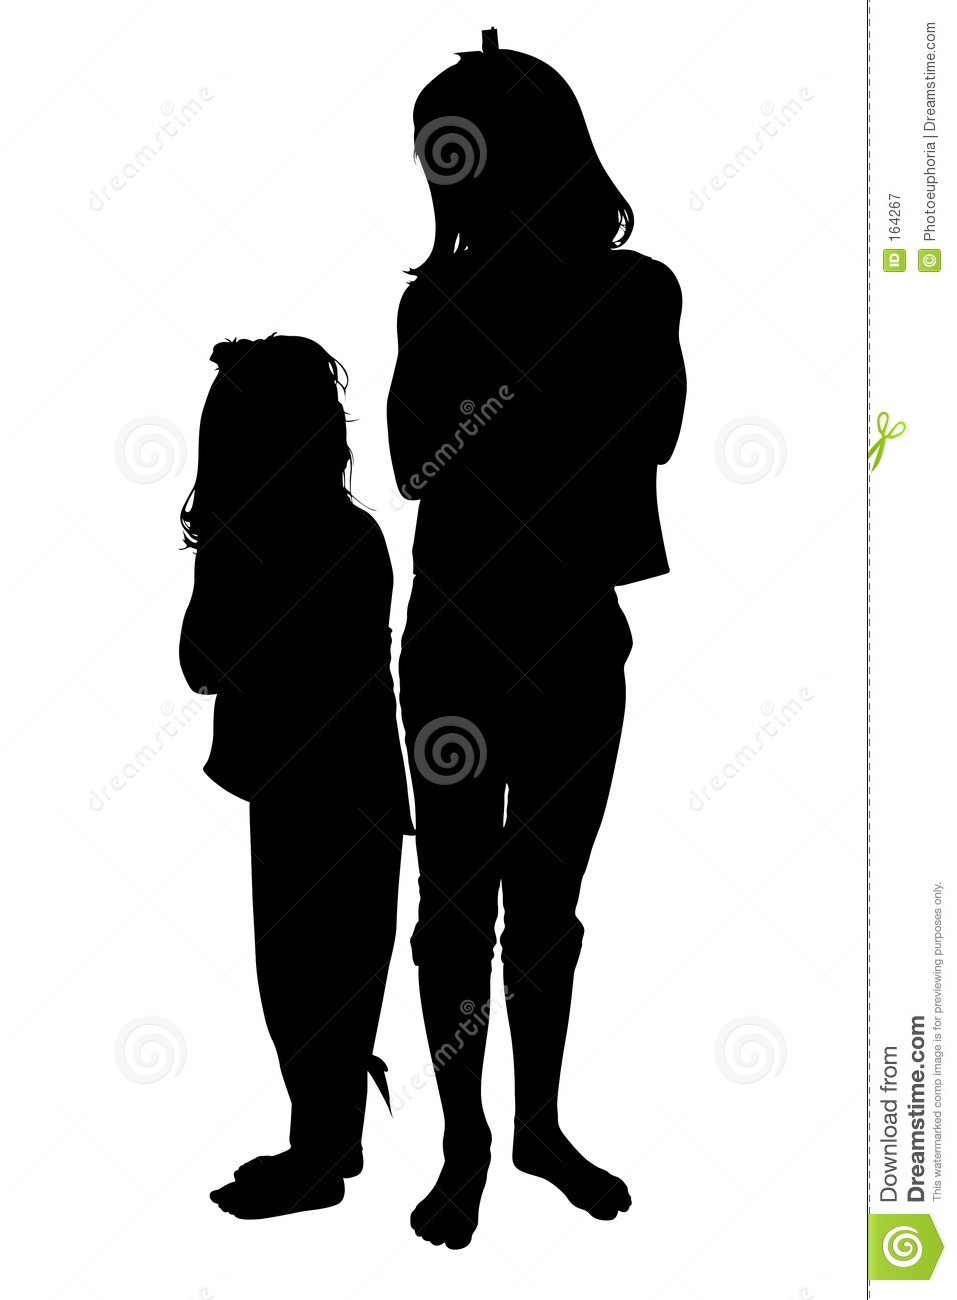 Silhouette Over White With Clipping Path  Two Small Girls Looking At